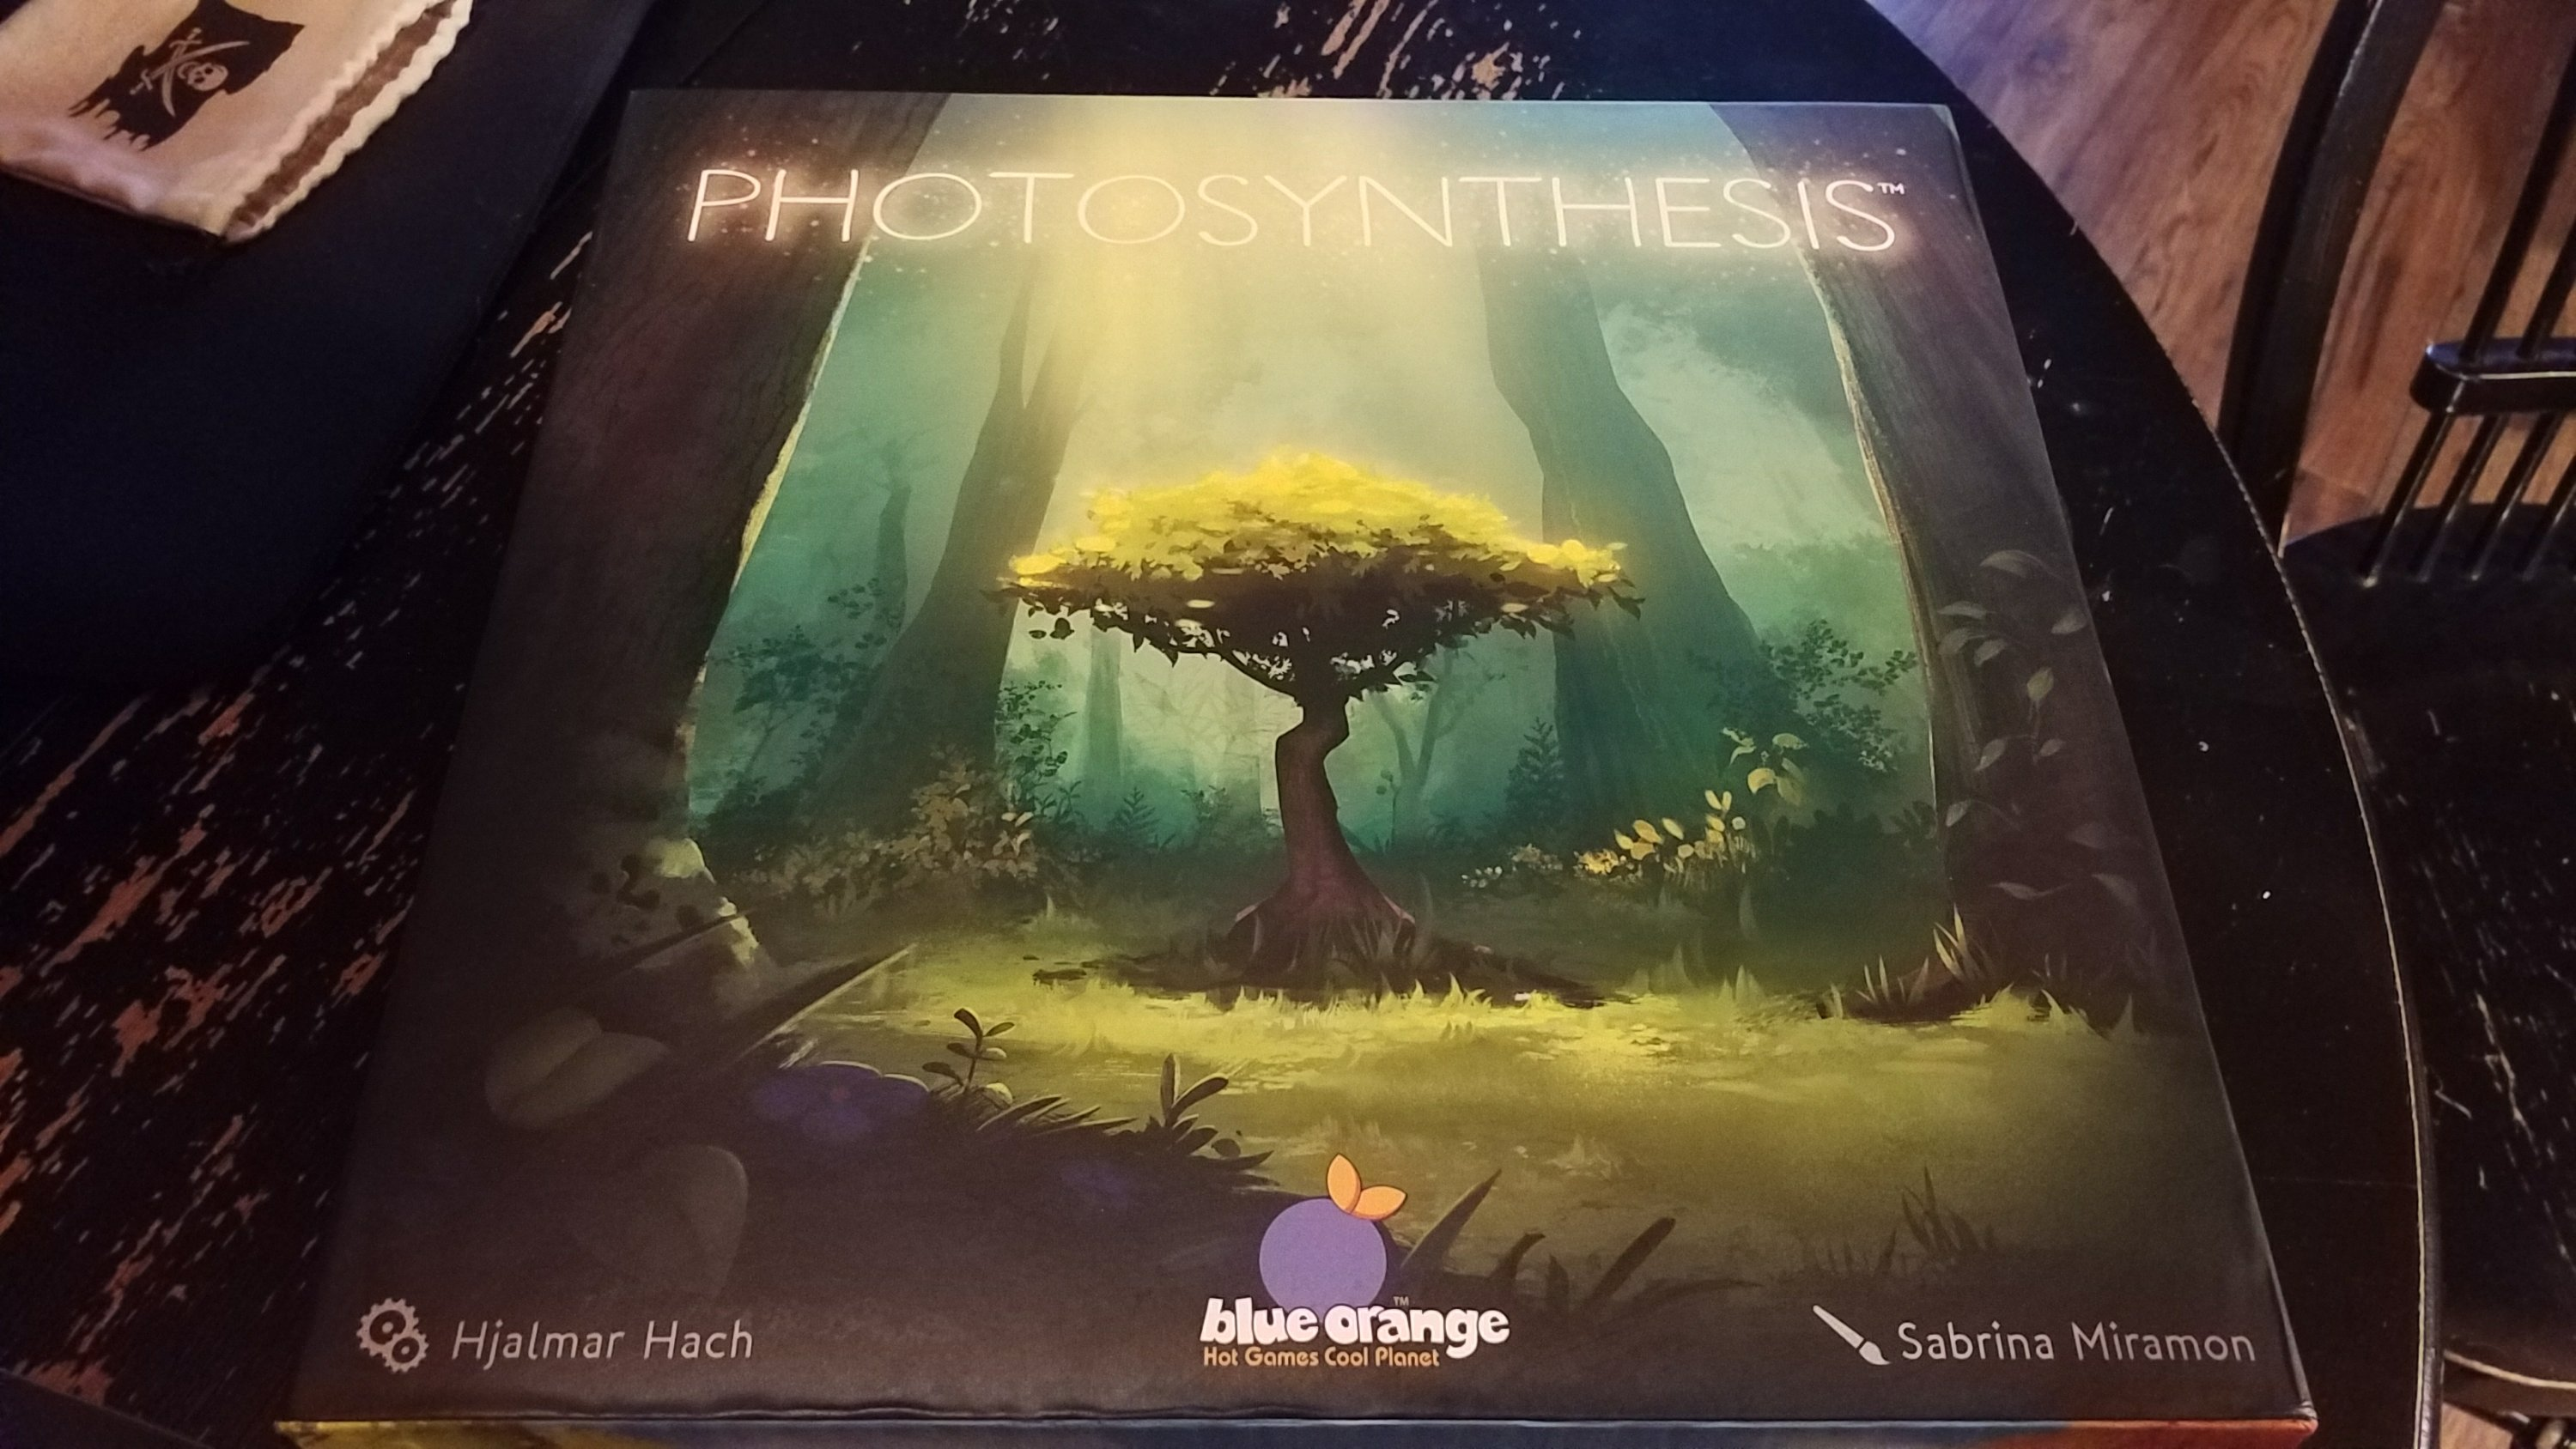 photosynthesis game box cover